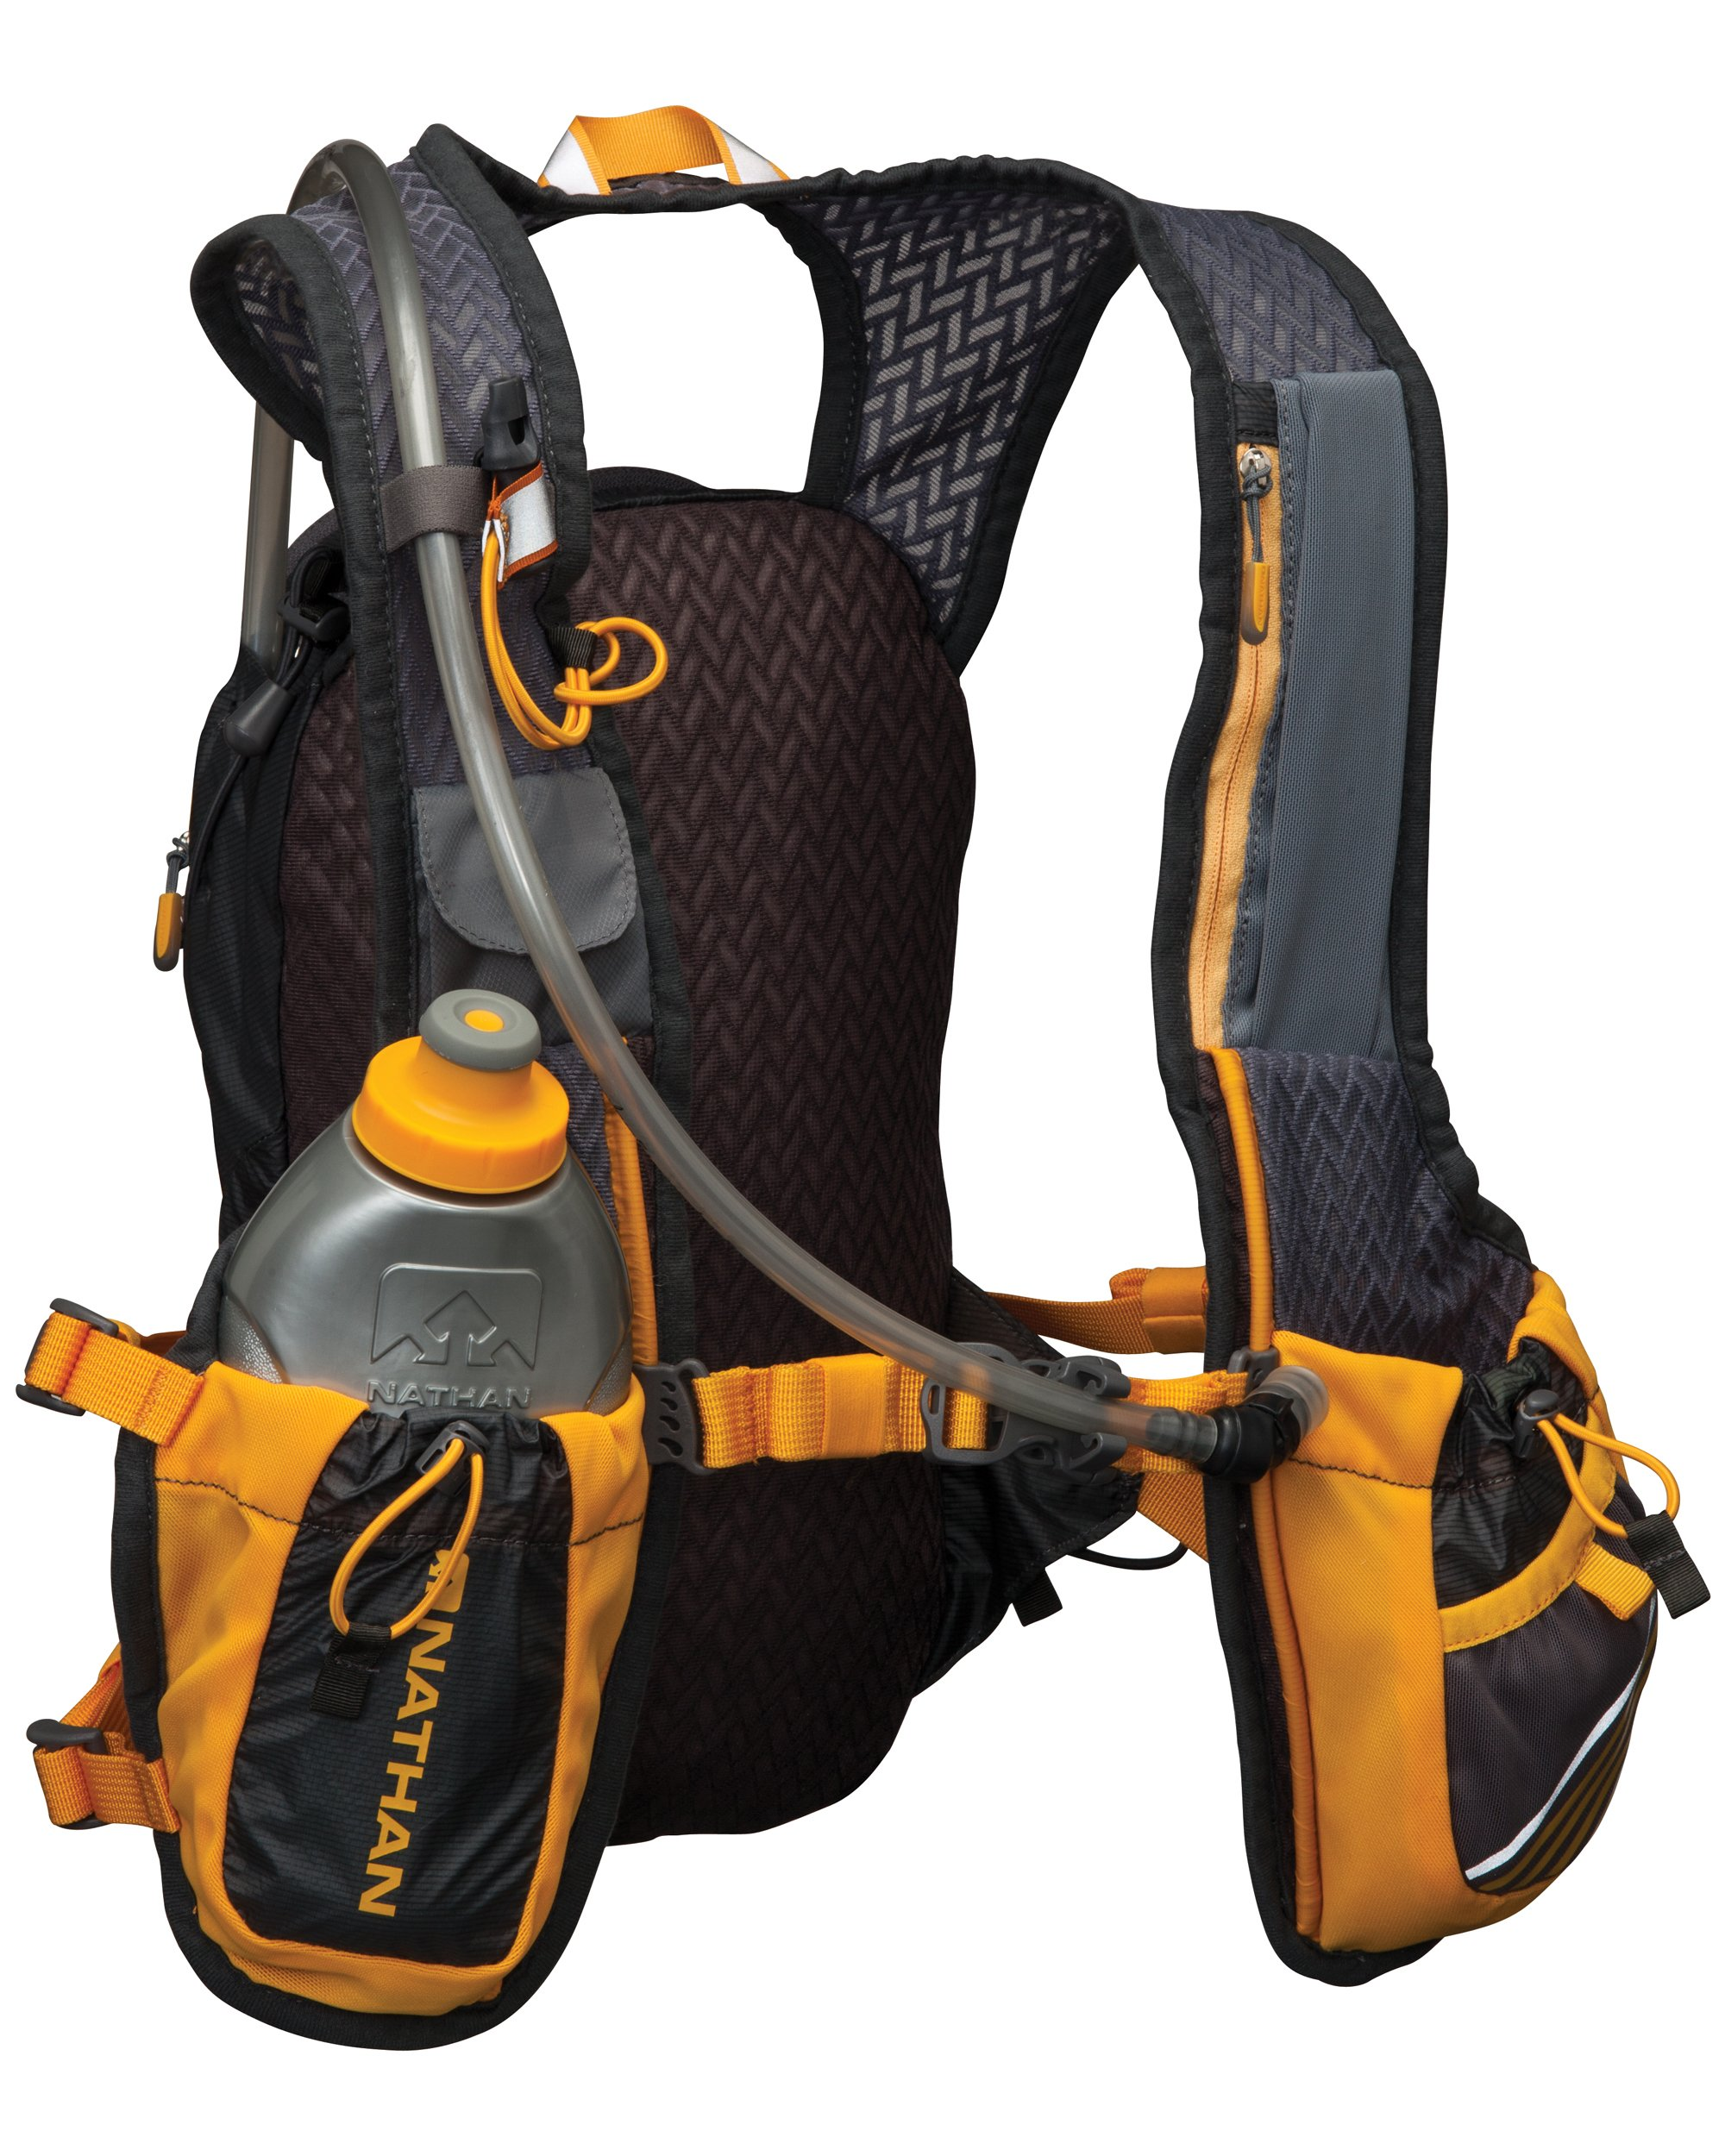 Nathan Zelos 2-Liter Hydration Vest, Nathan Grey, One Size by Nathan (Image #2)